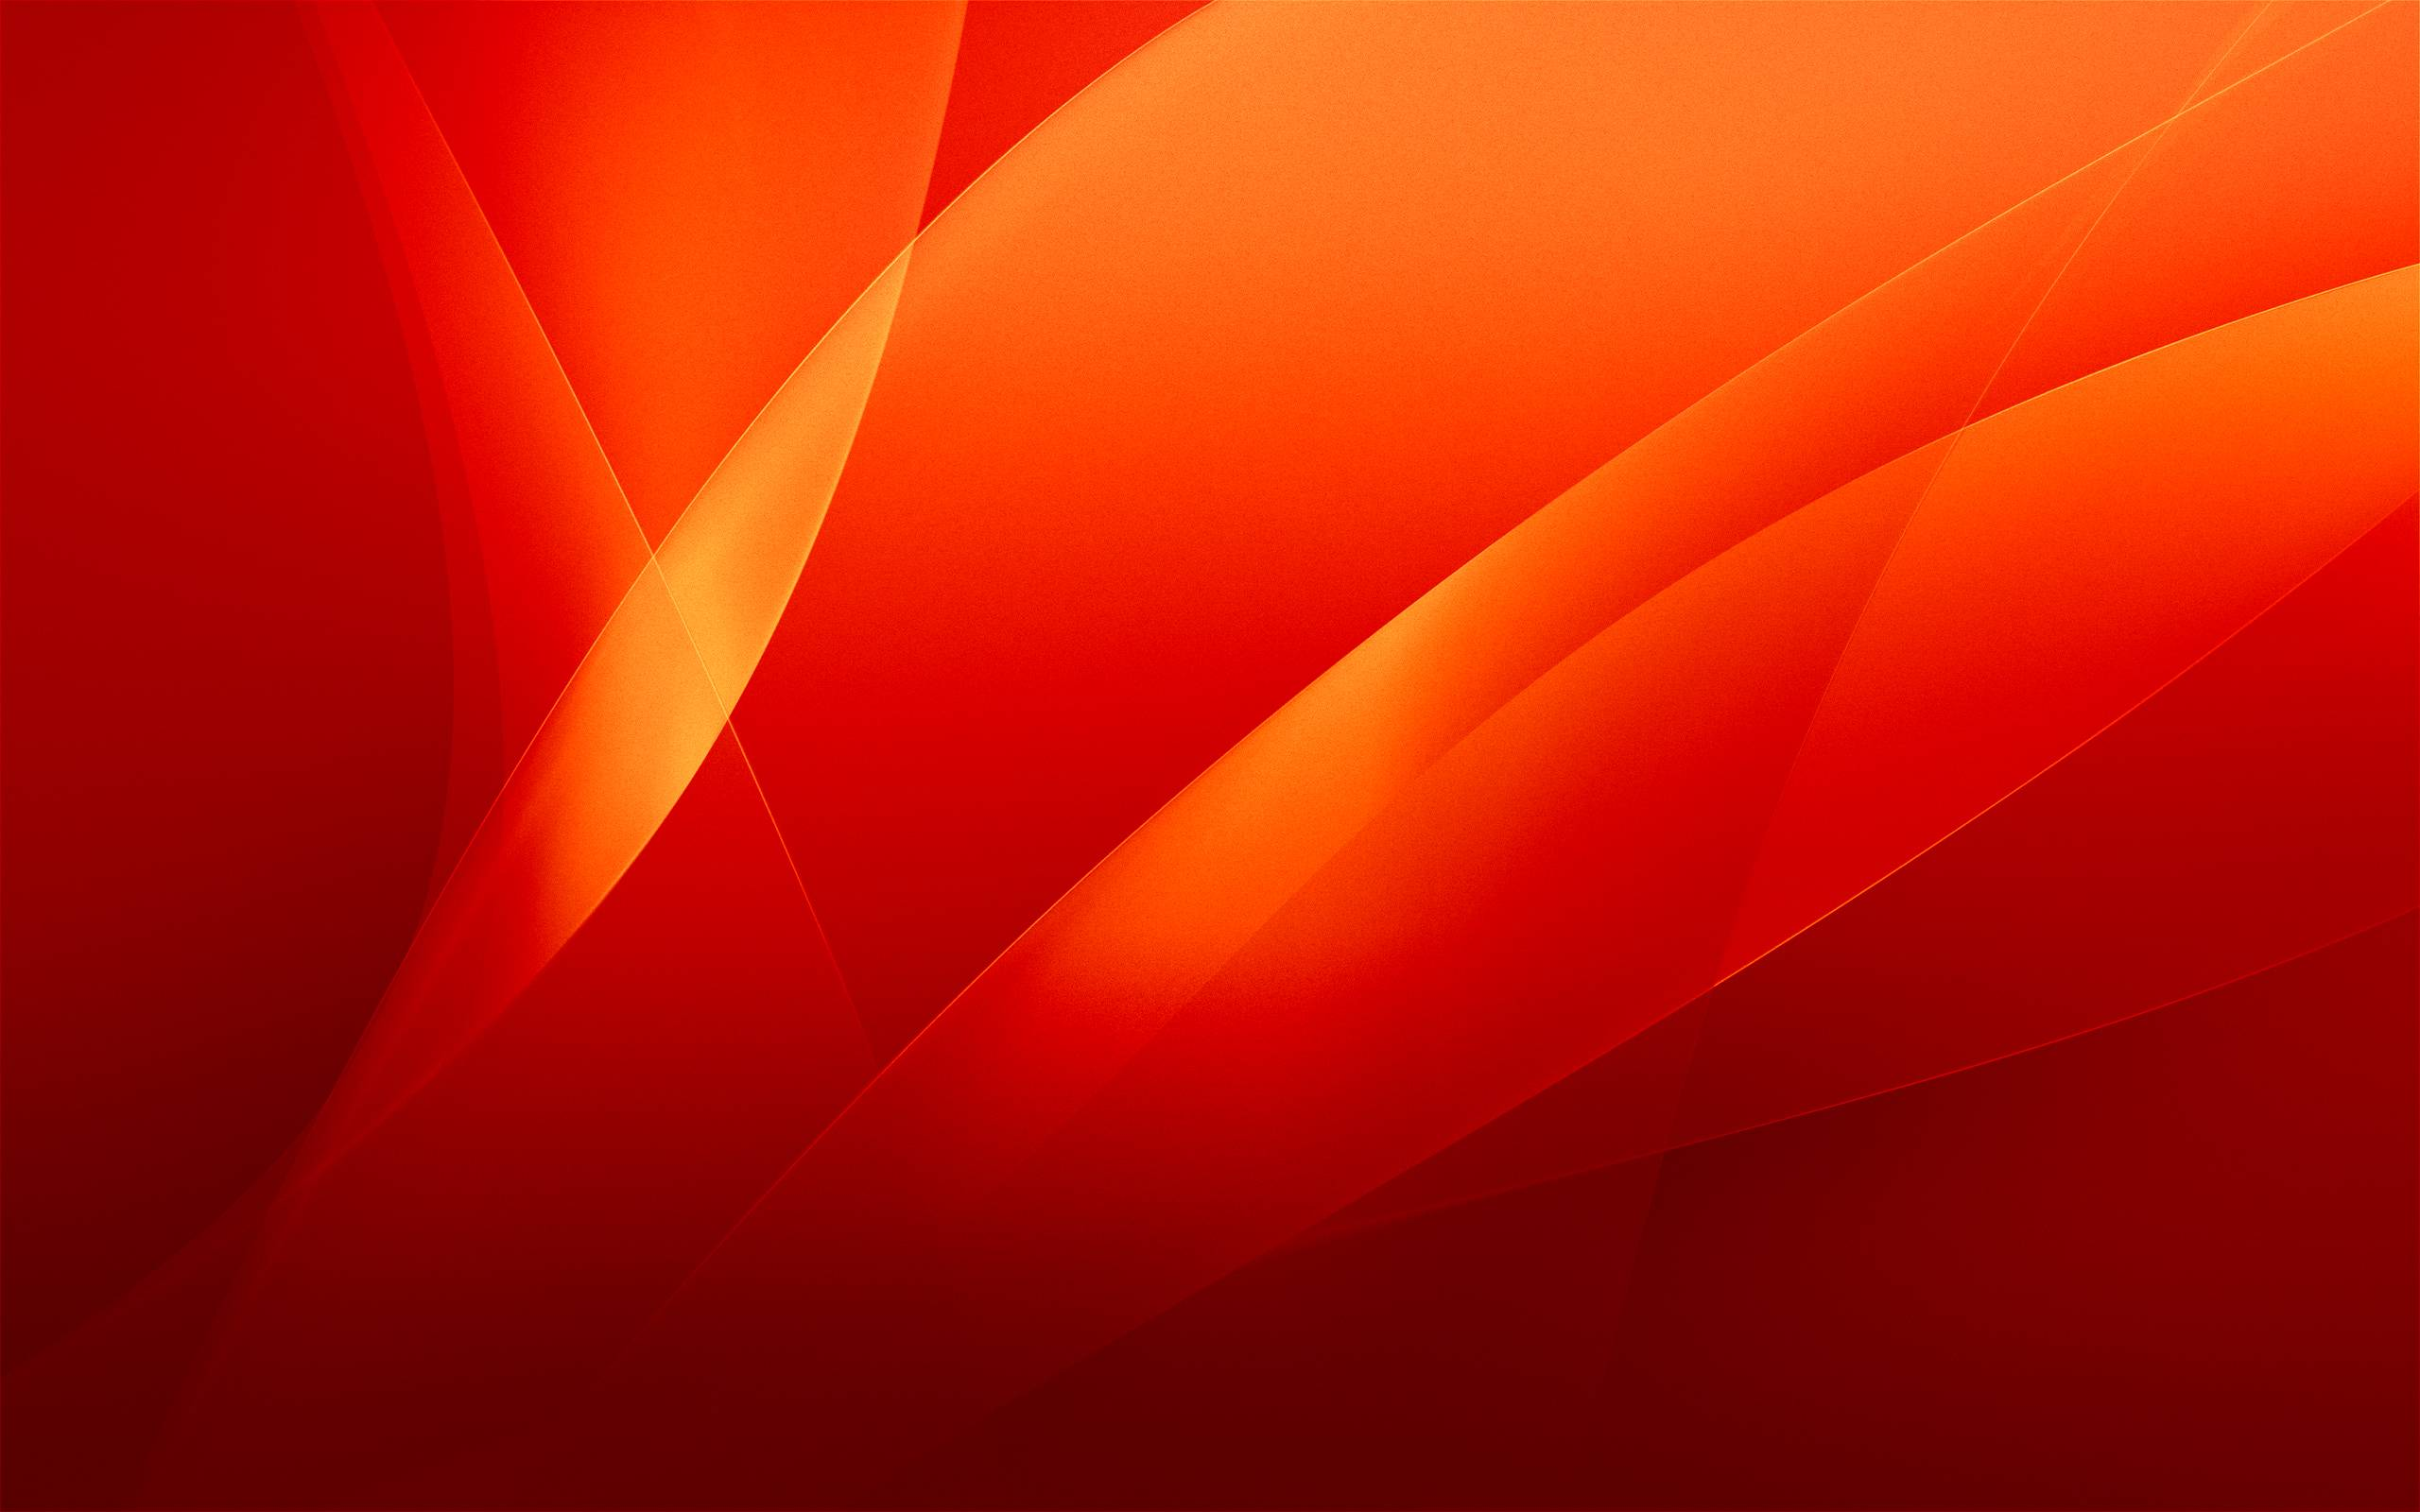 Red Backgrounds Wallpapers 2560x1600